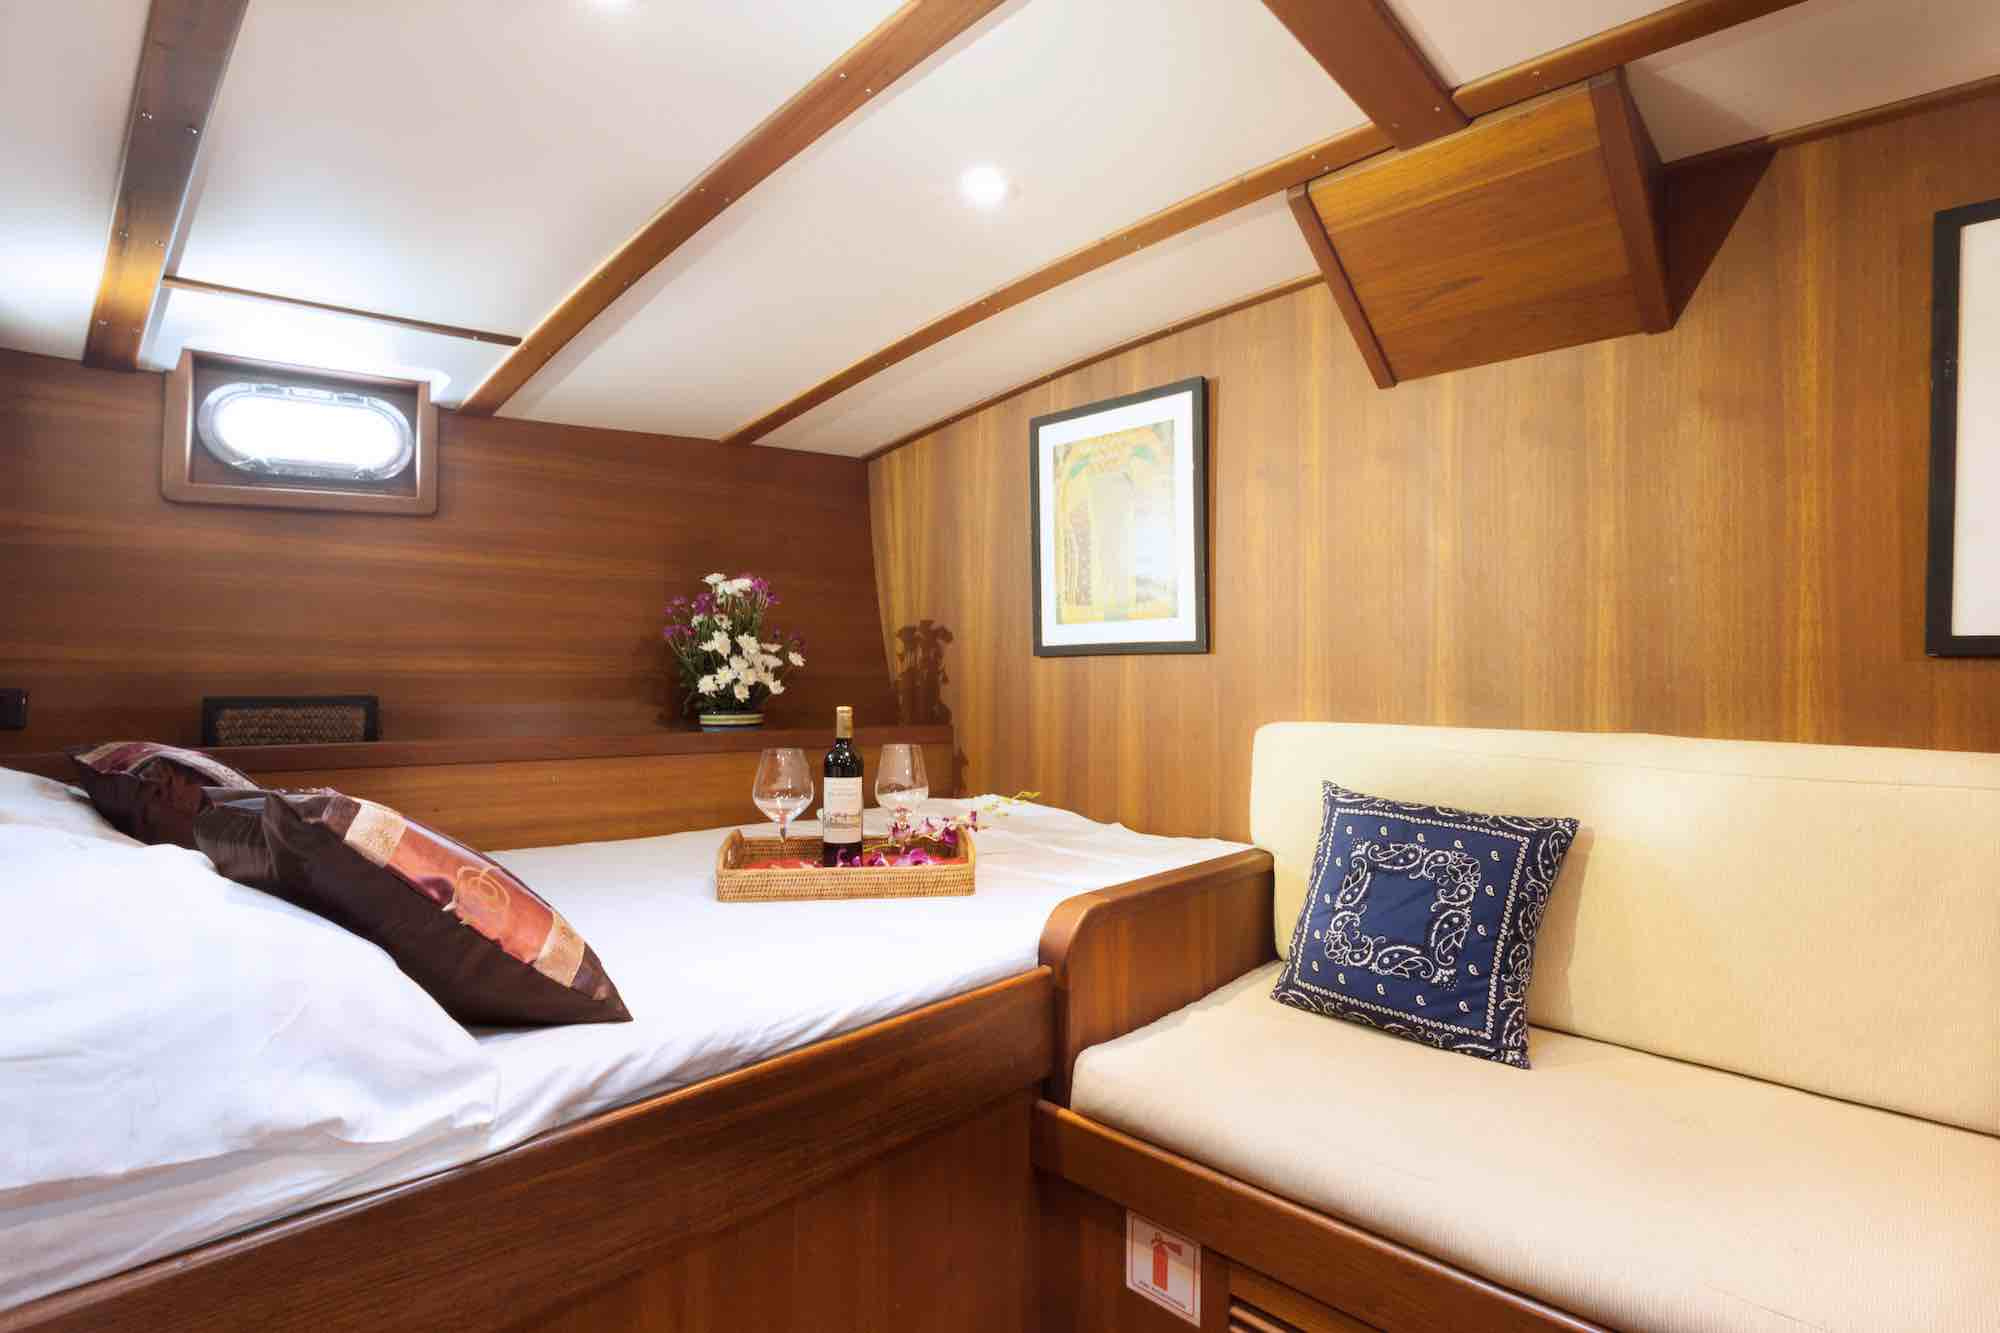 Jubilaeum_guest cabin-double bed-wine tray-brighter light-sailing holiday in Mergui_XS.jpeg